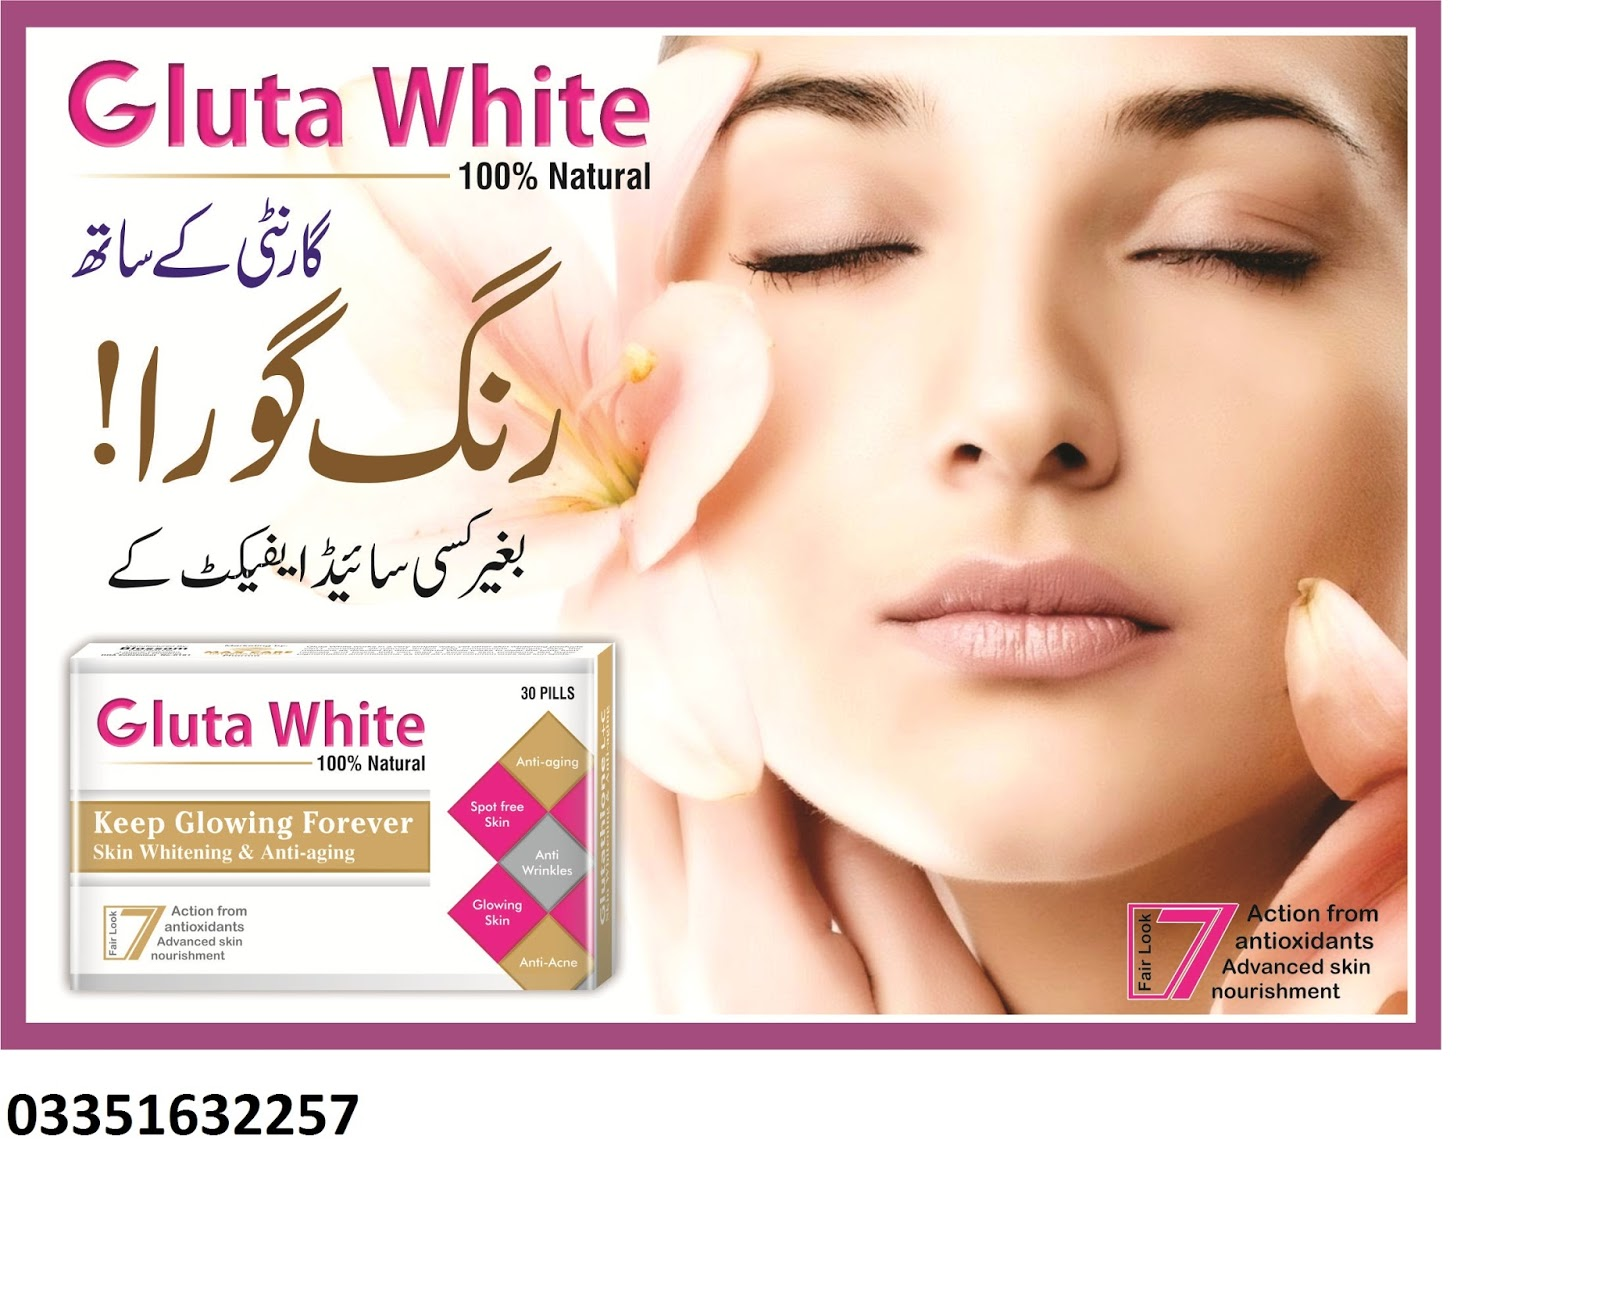 how to get beautiful skin at homeGluta White soap in Pakistan